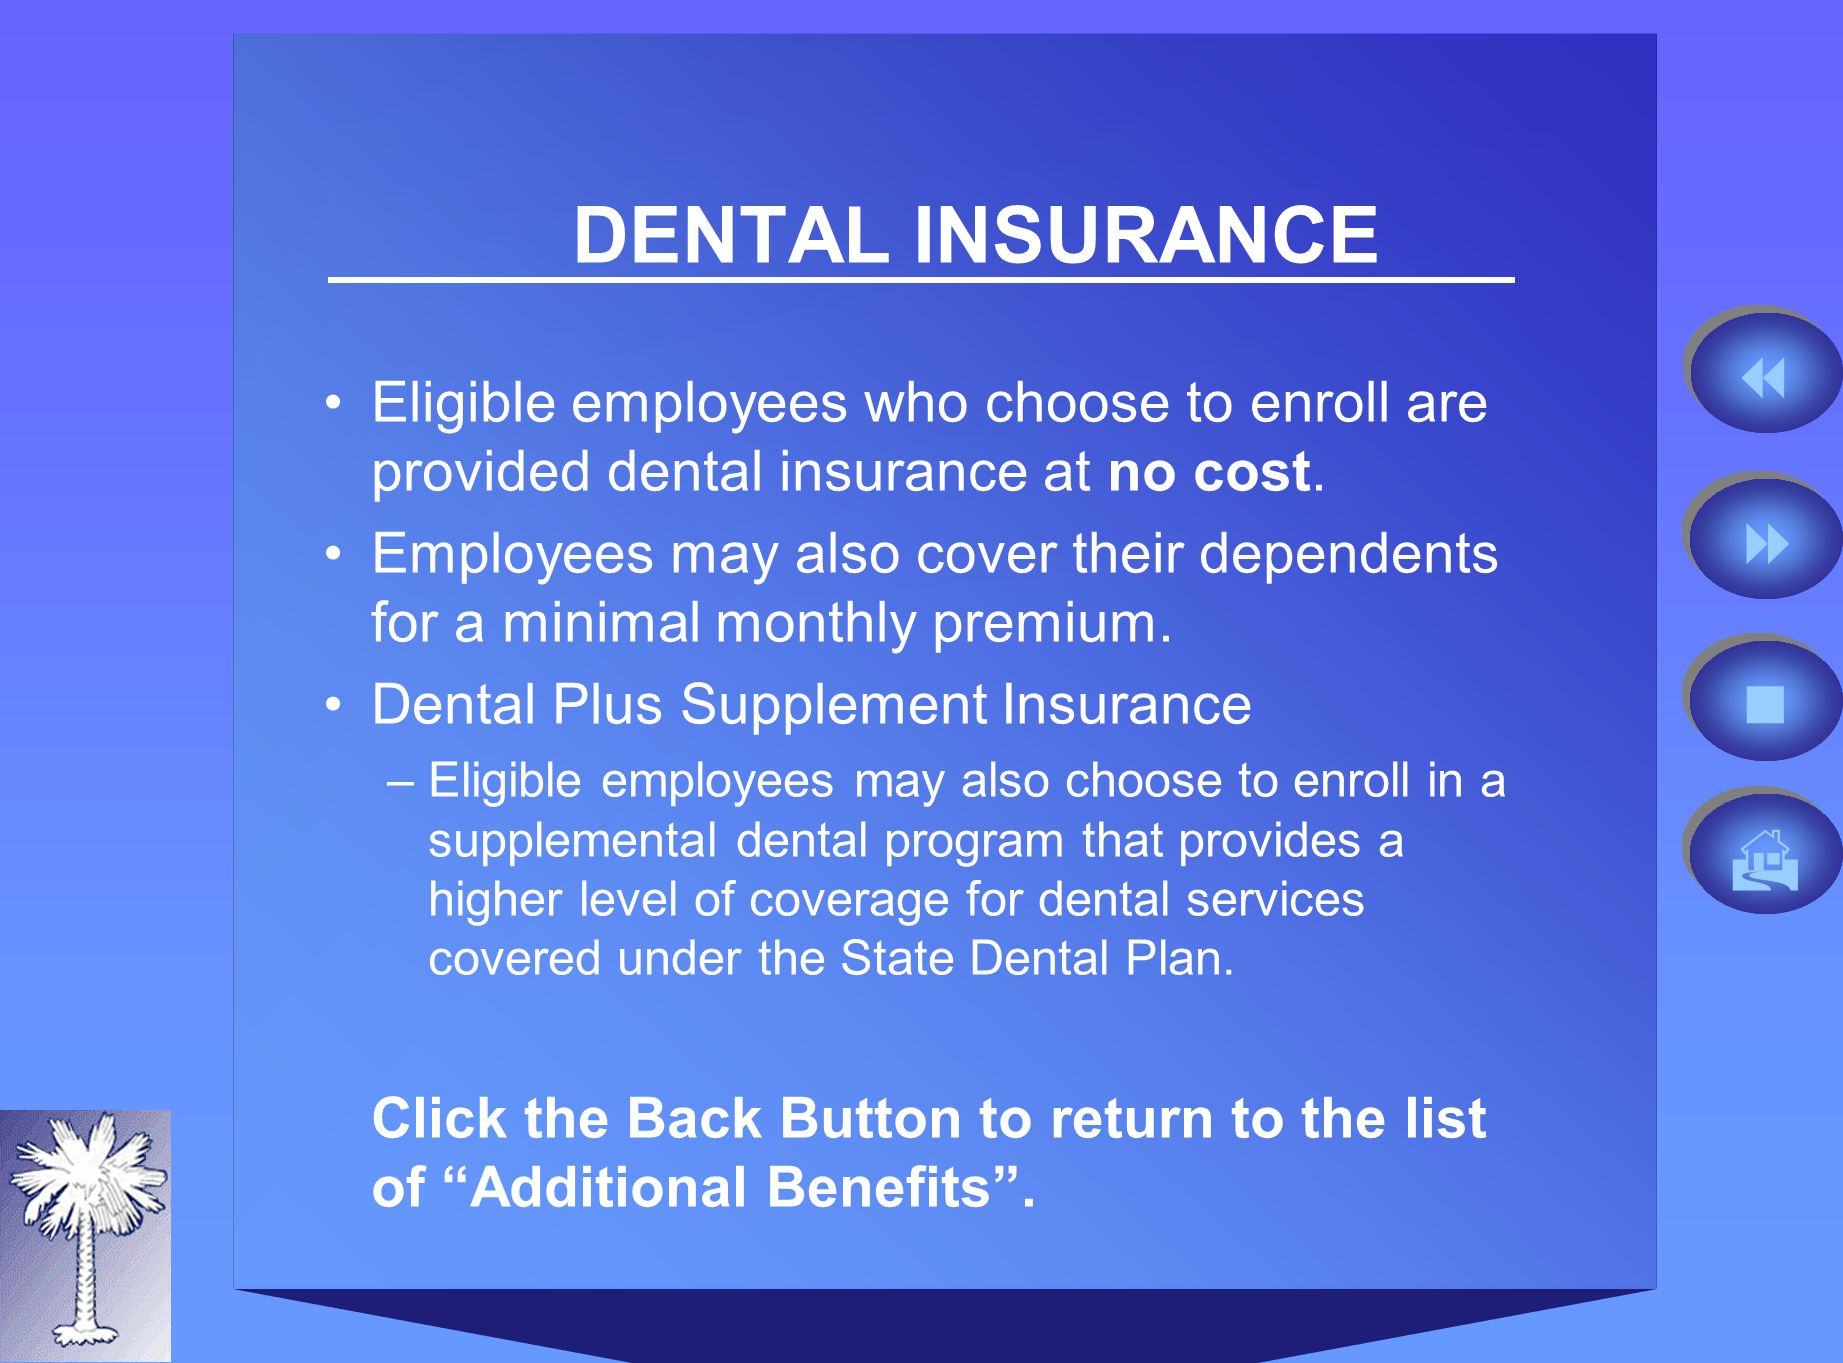 DENTAL INSURANCE Eligible employees who choose to enroll are provided dental insurance at no cost.